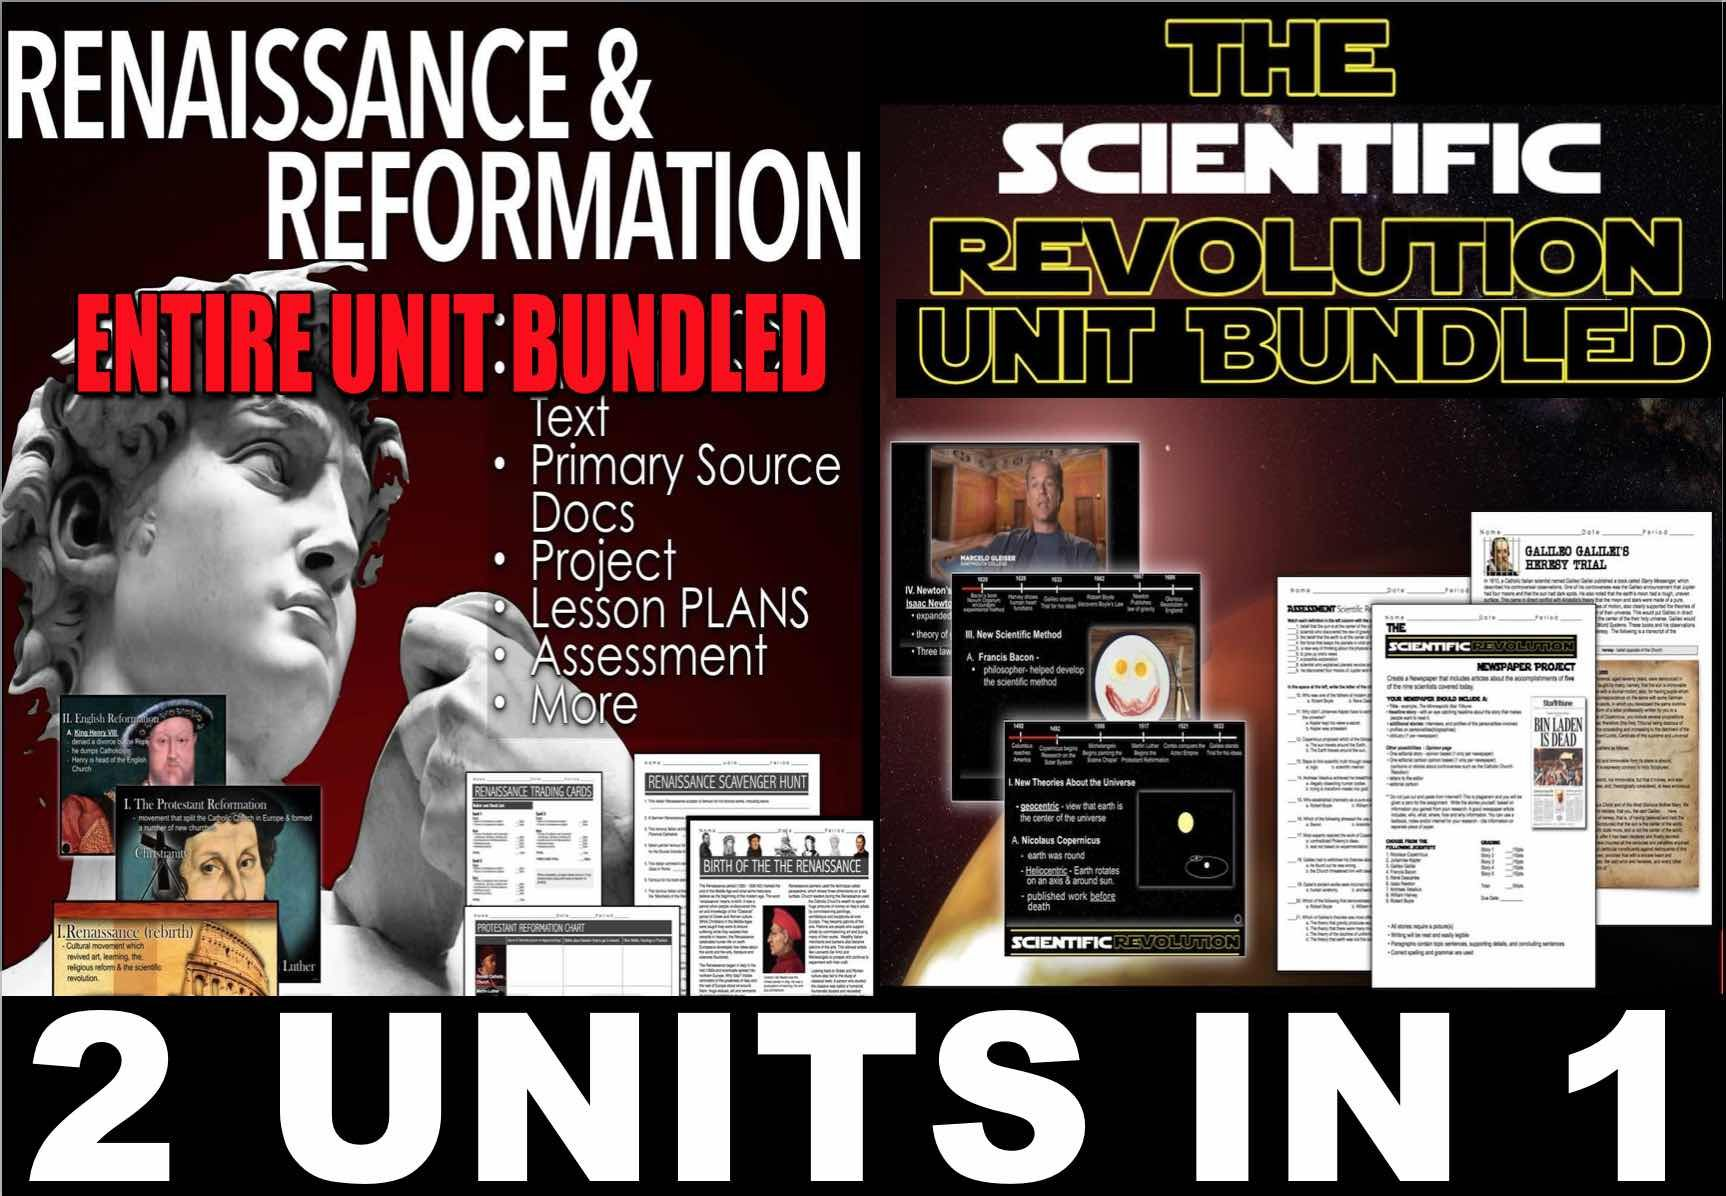 Renaissance Scientific Revolution Unit Bundled 2 Units In